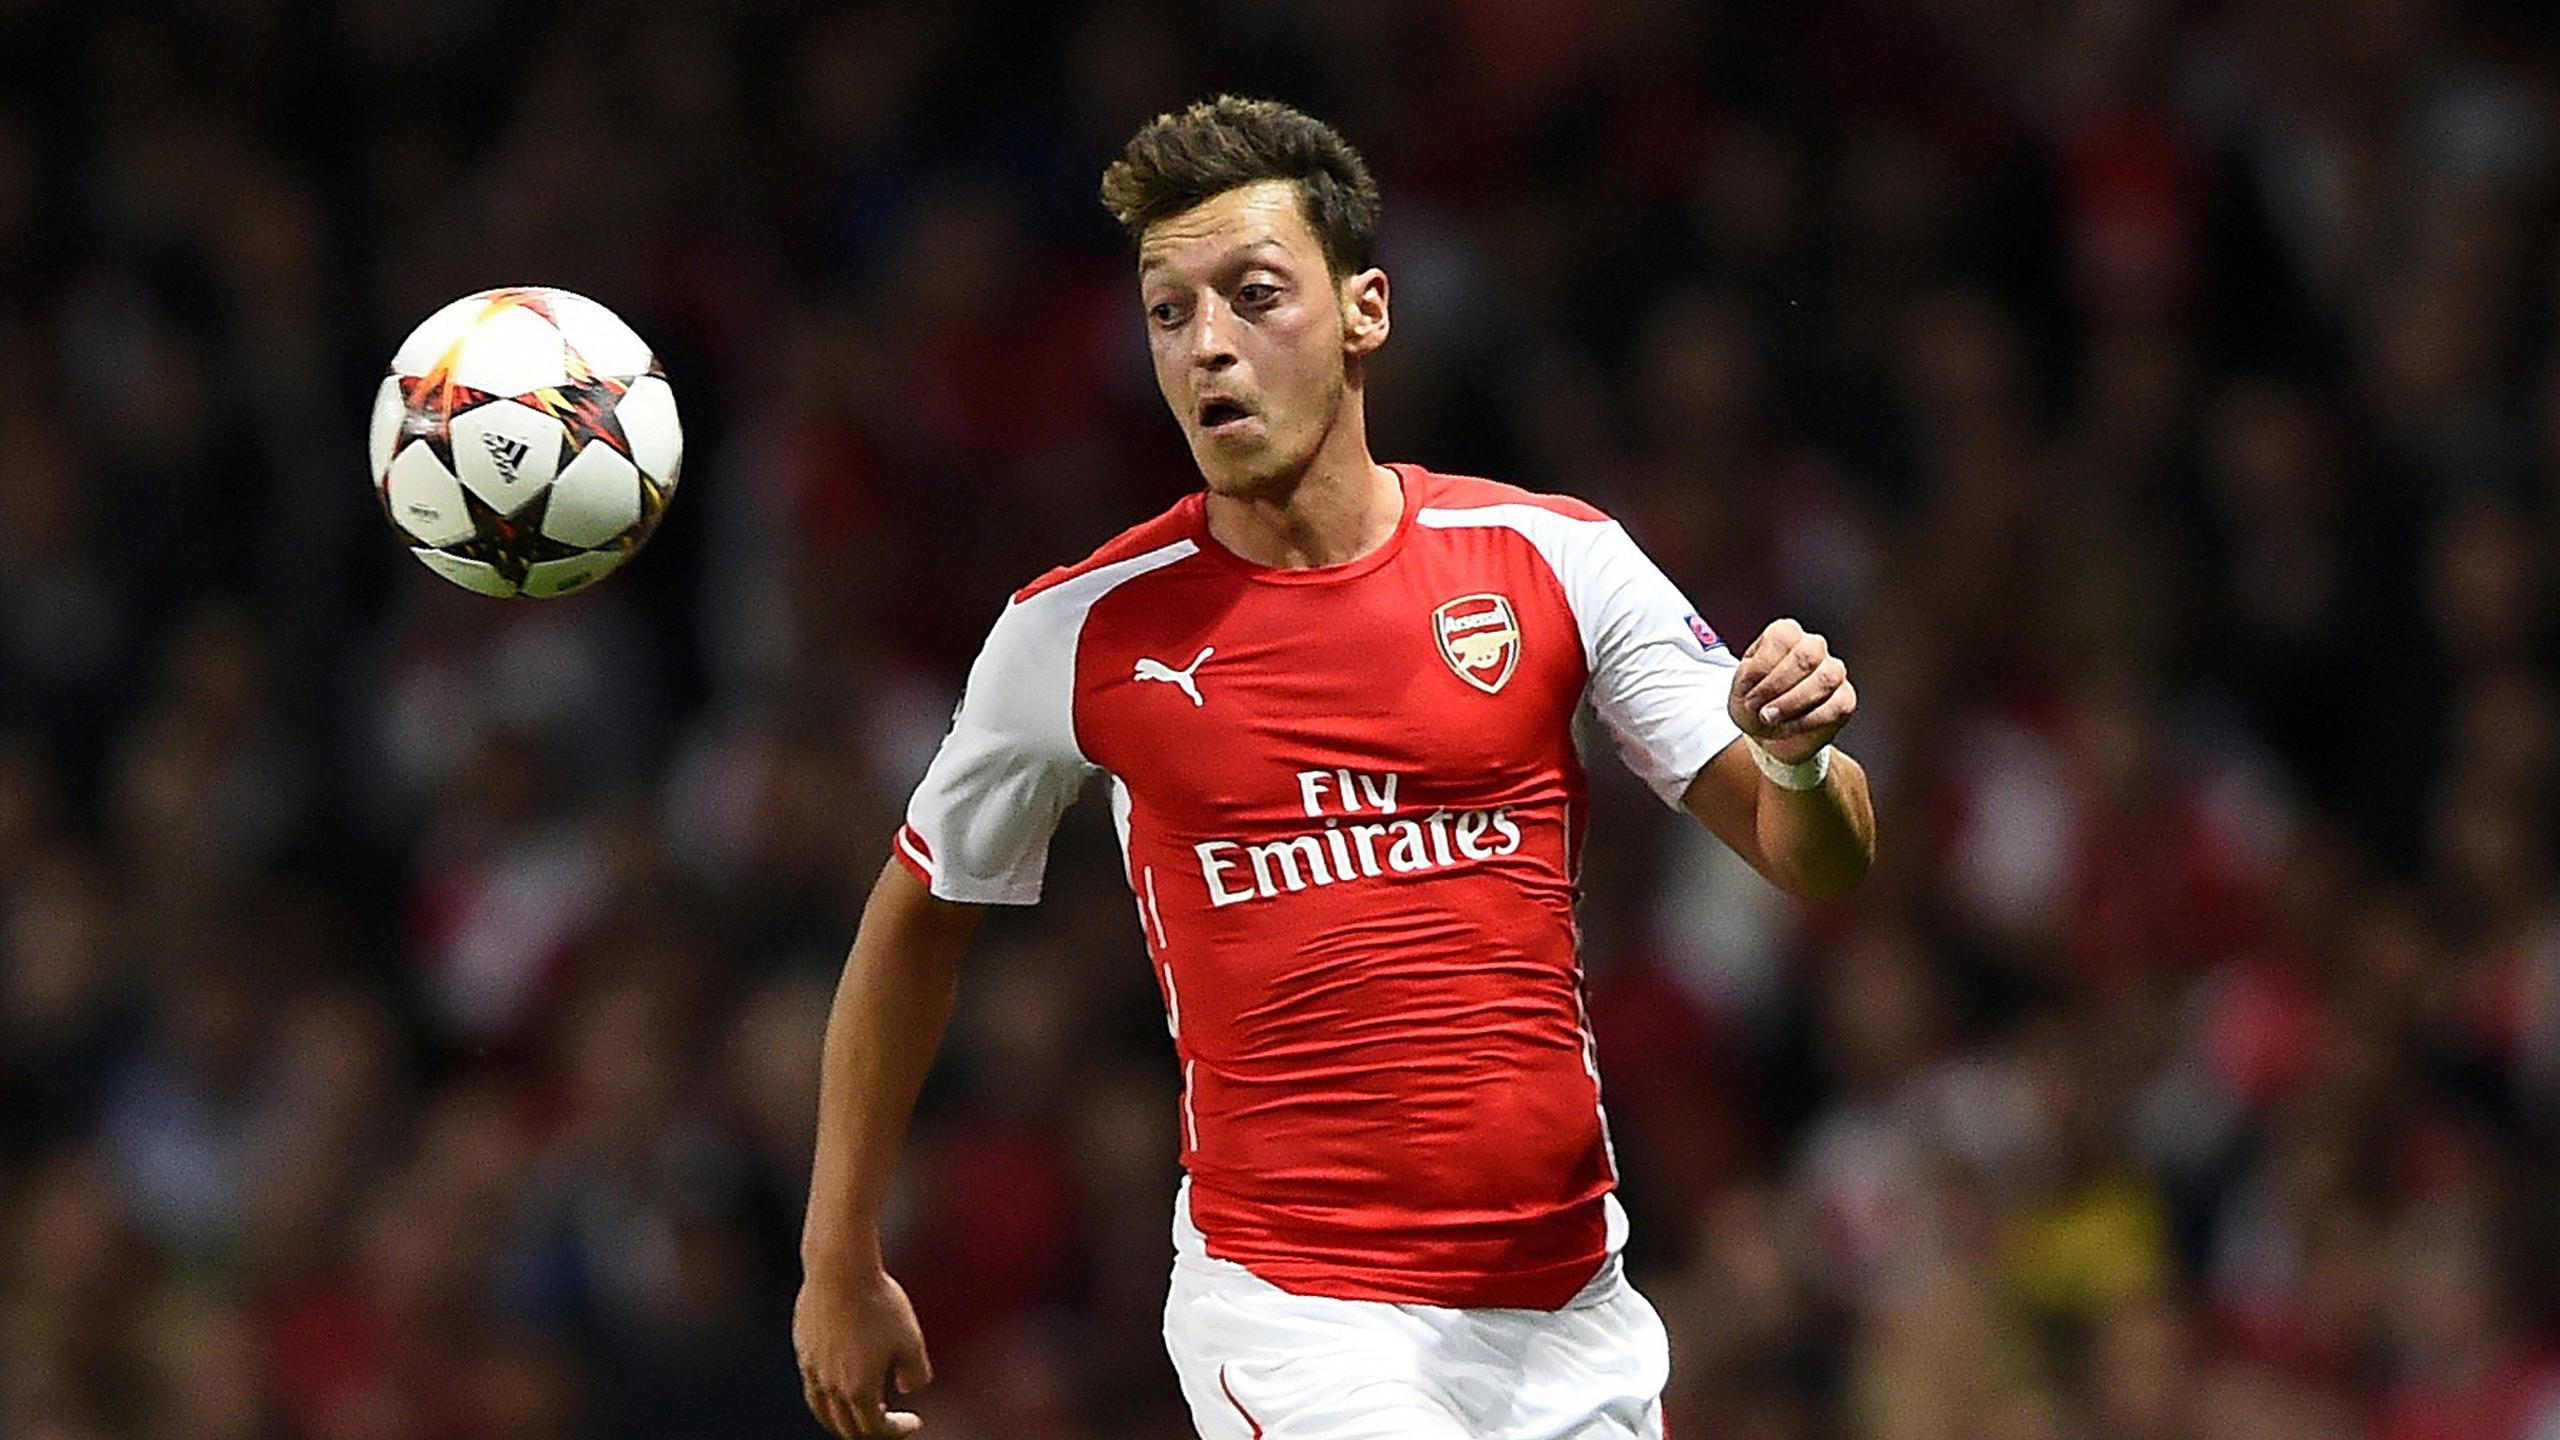 Arsenal's Mesut Ozil runs for the ball during their Champions League playoff soccer match against Besiktas at the Emirates stadium in London August 27, 2014